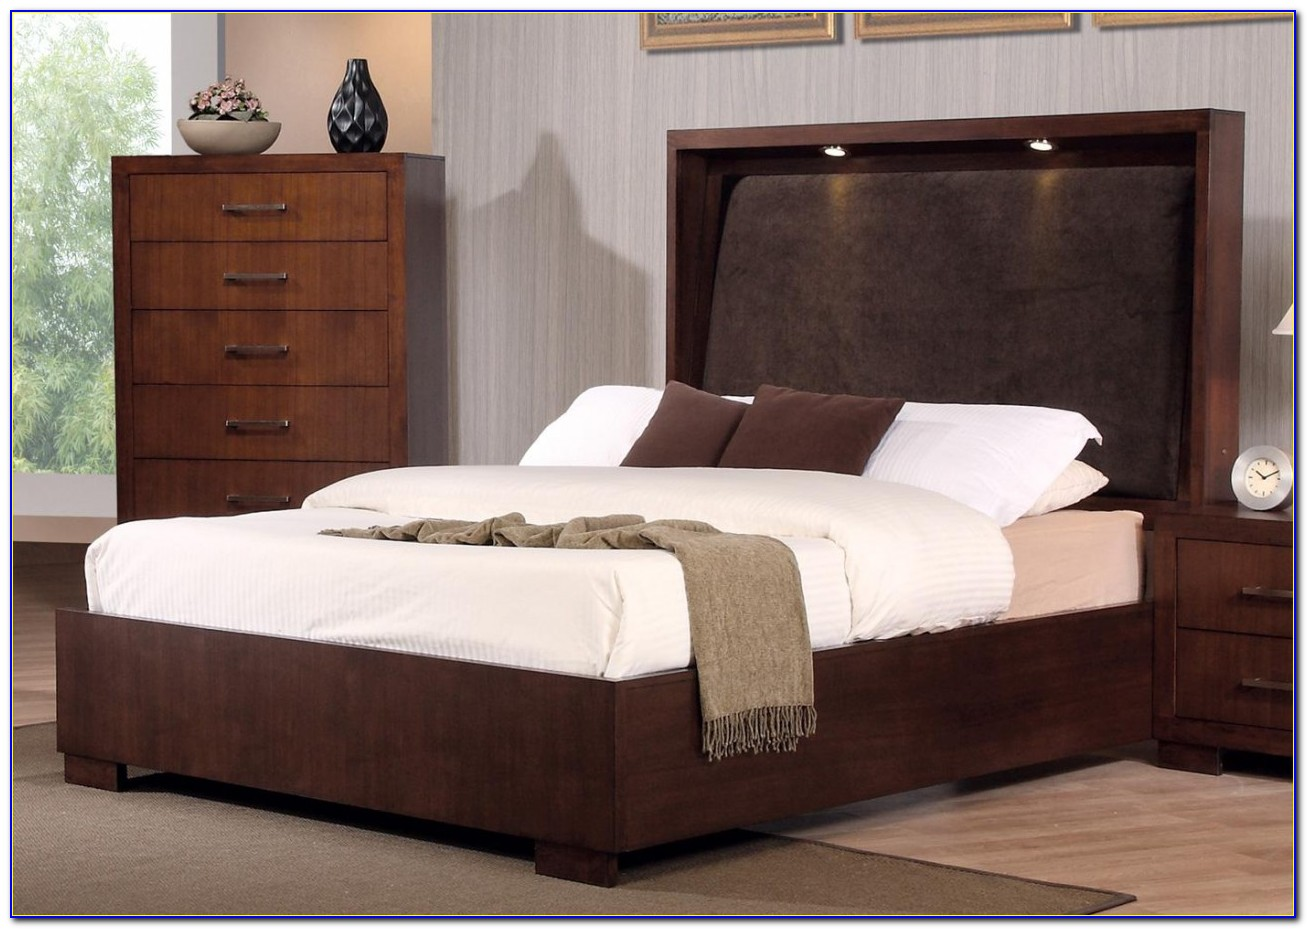 California King Bed Headboard Storage